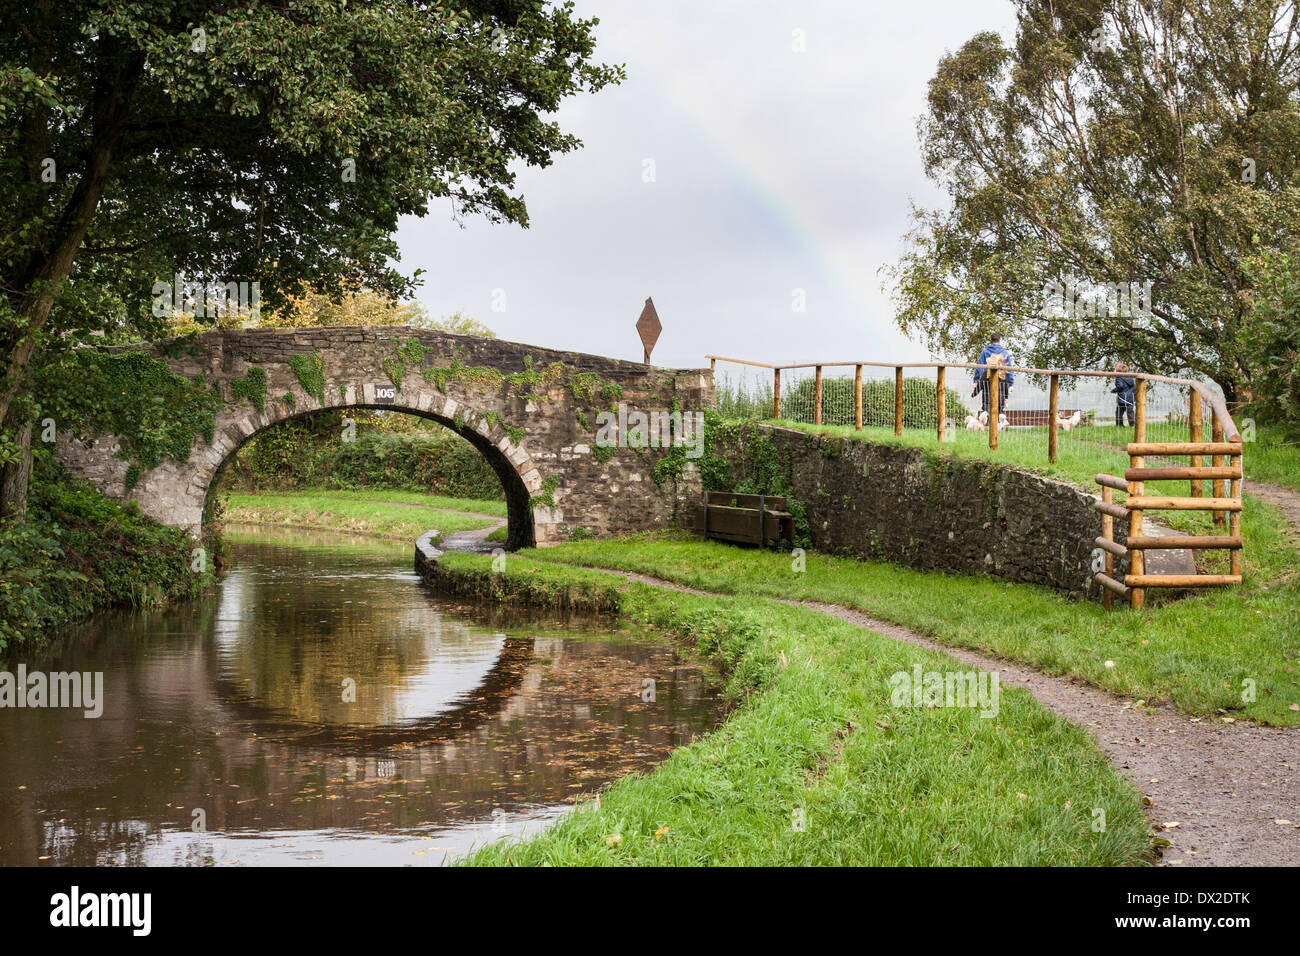 Dog walkers cross over the Sand Bridge No 105 on the Monmouthshire and Brecon Canal, Wales, GB, UK. Stock Photo